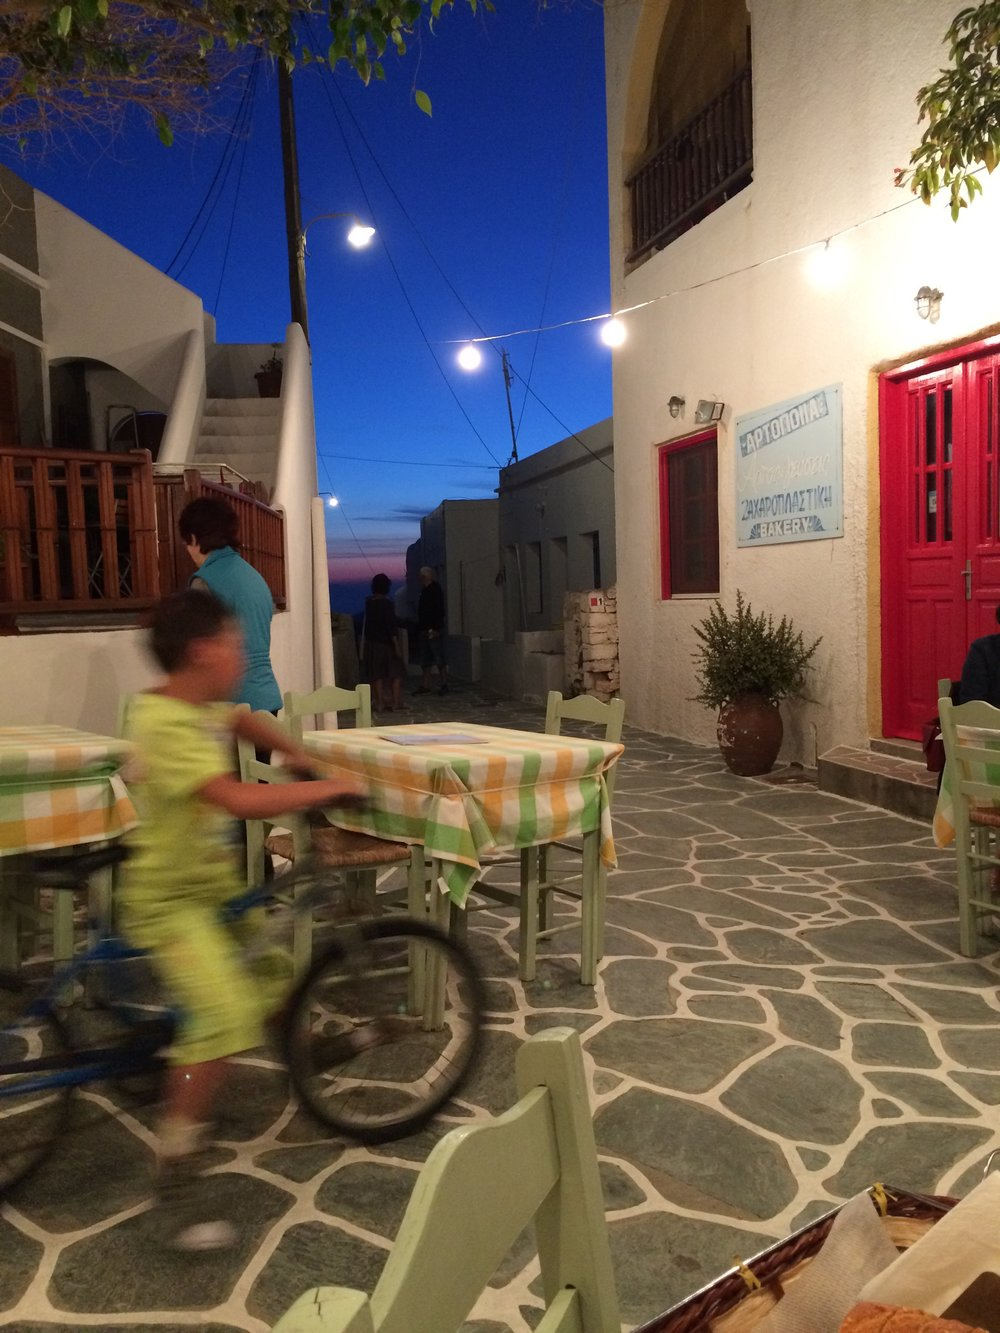 Enjoying an evening meal and local life in Chora under the night sky. Dinner included a local caper berry sauce made from capers picked fresh that day.